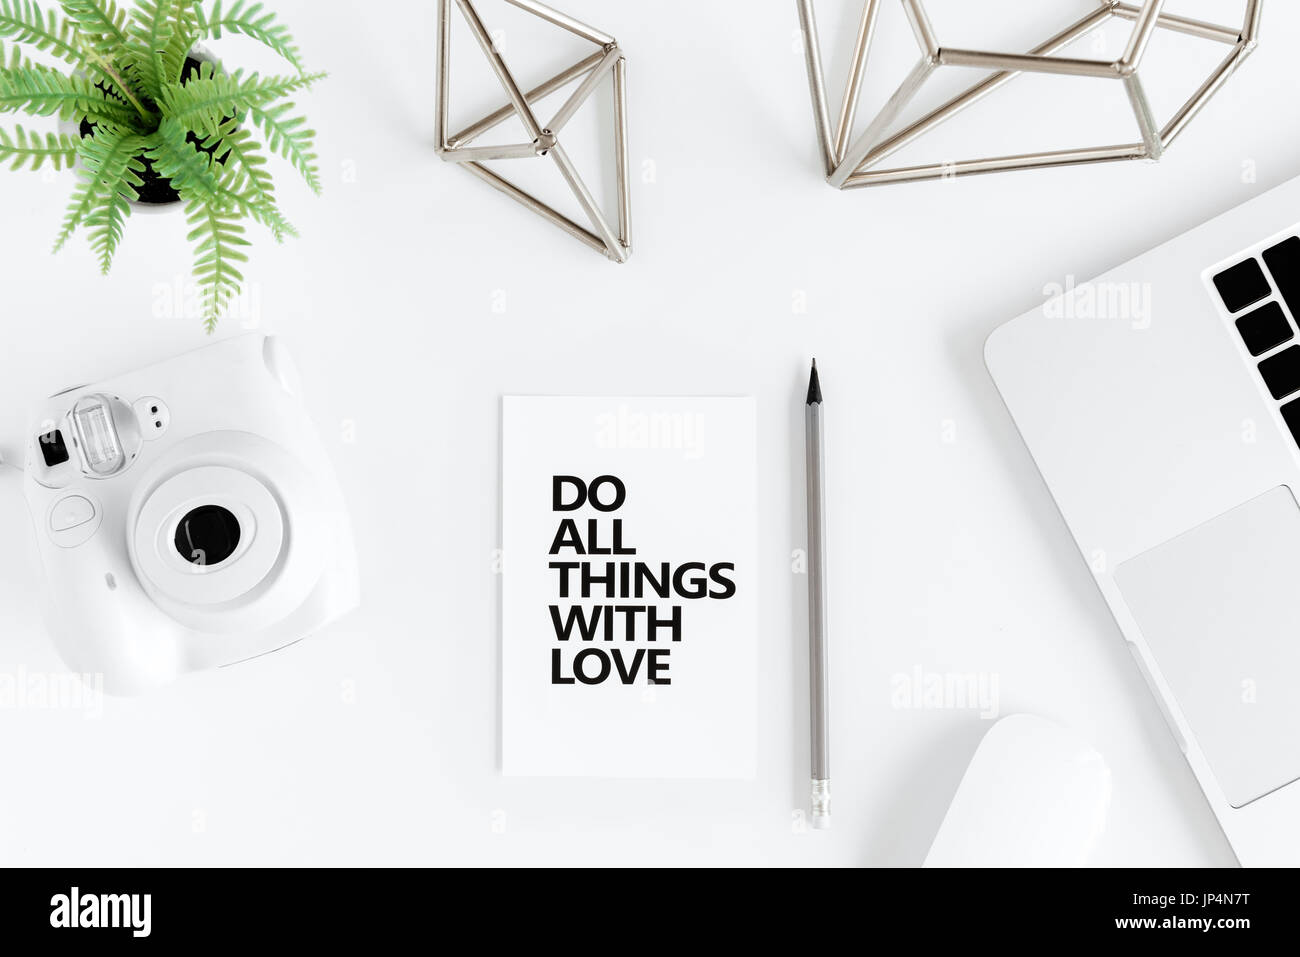 Top view of do all things with love motivational quote and instant camera at workplace Stock Photo